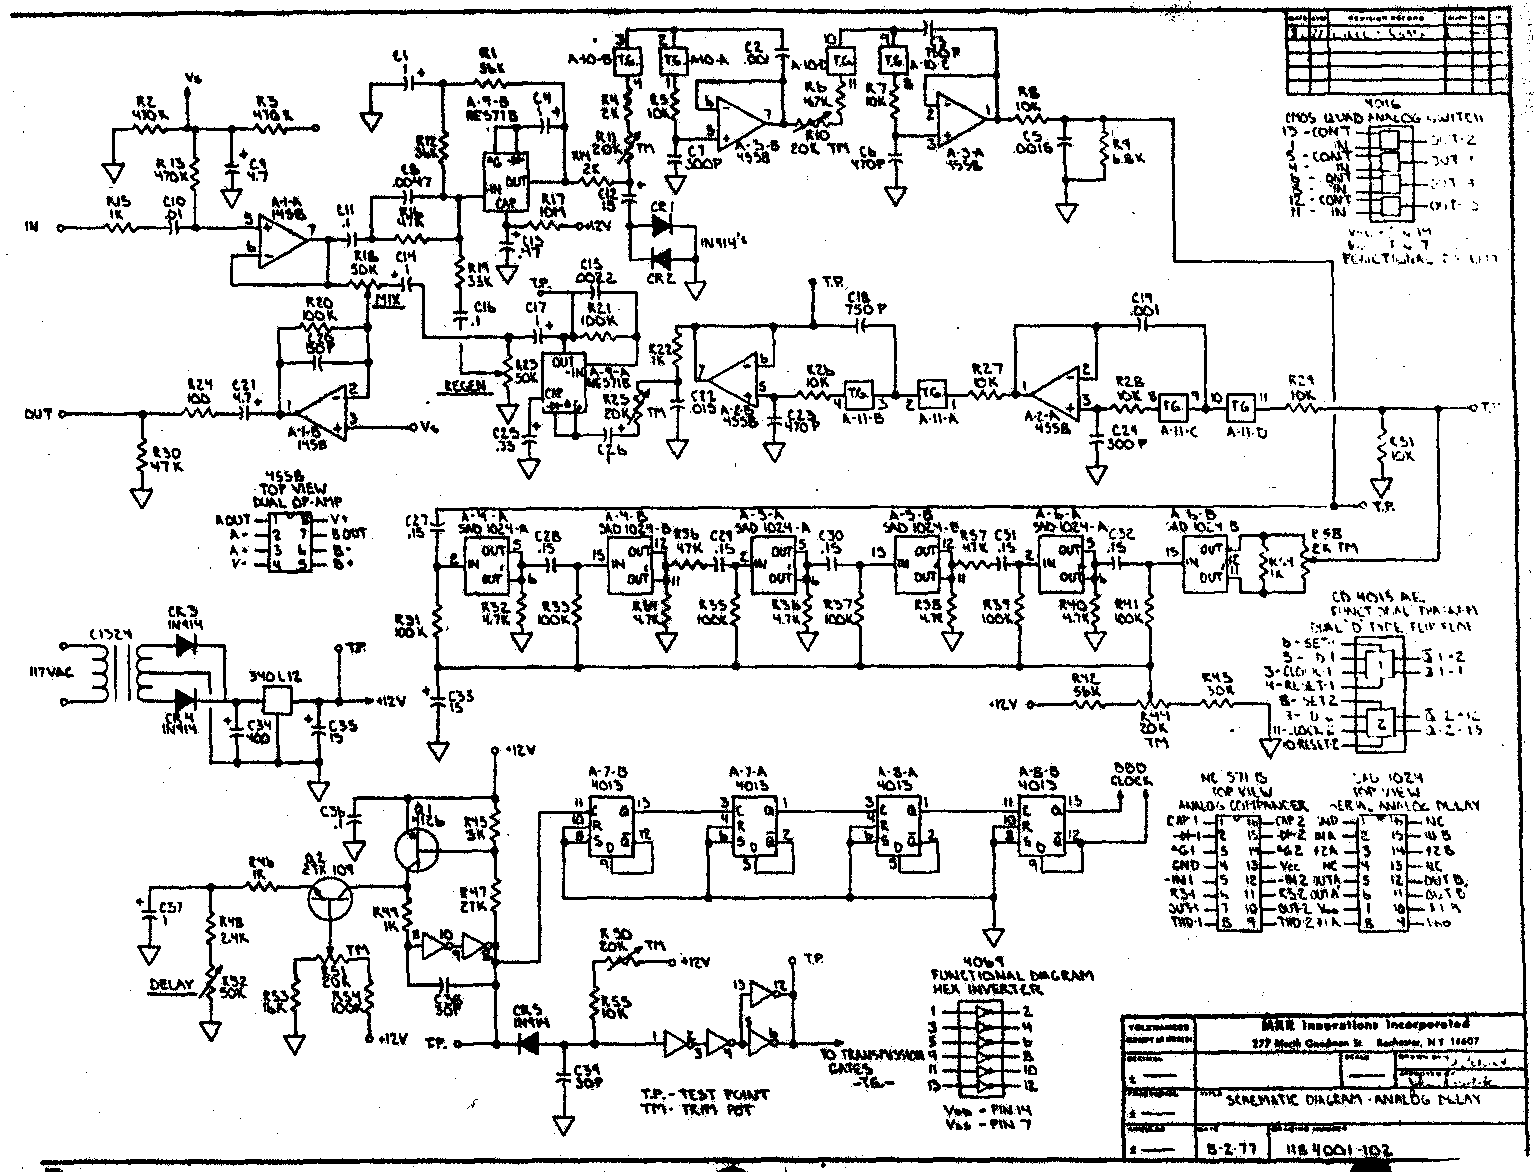 Mxr Graphic Equalizer Circuit Analysis Perf And Pcb Effects Layouts Stereo Wiring Diagram Download